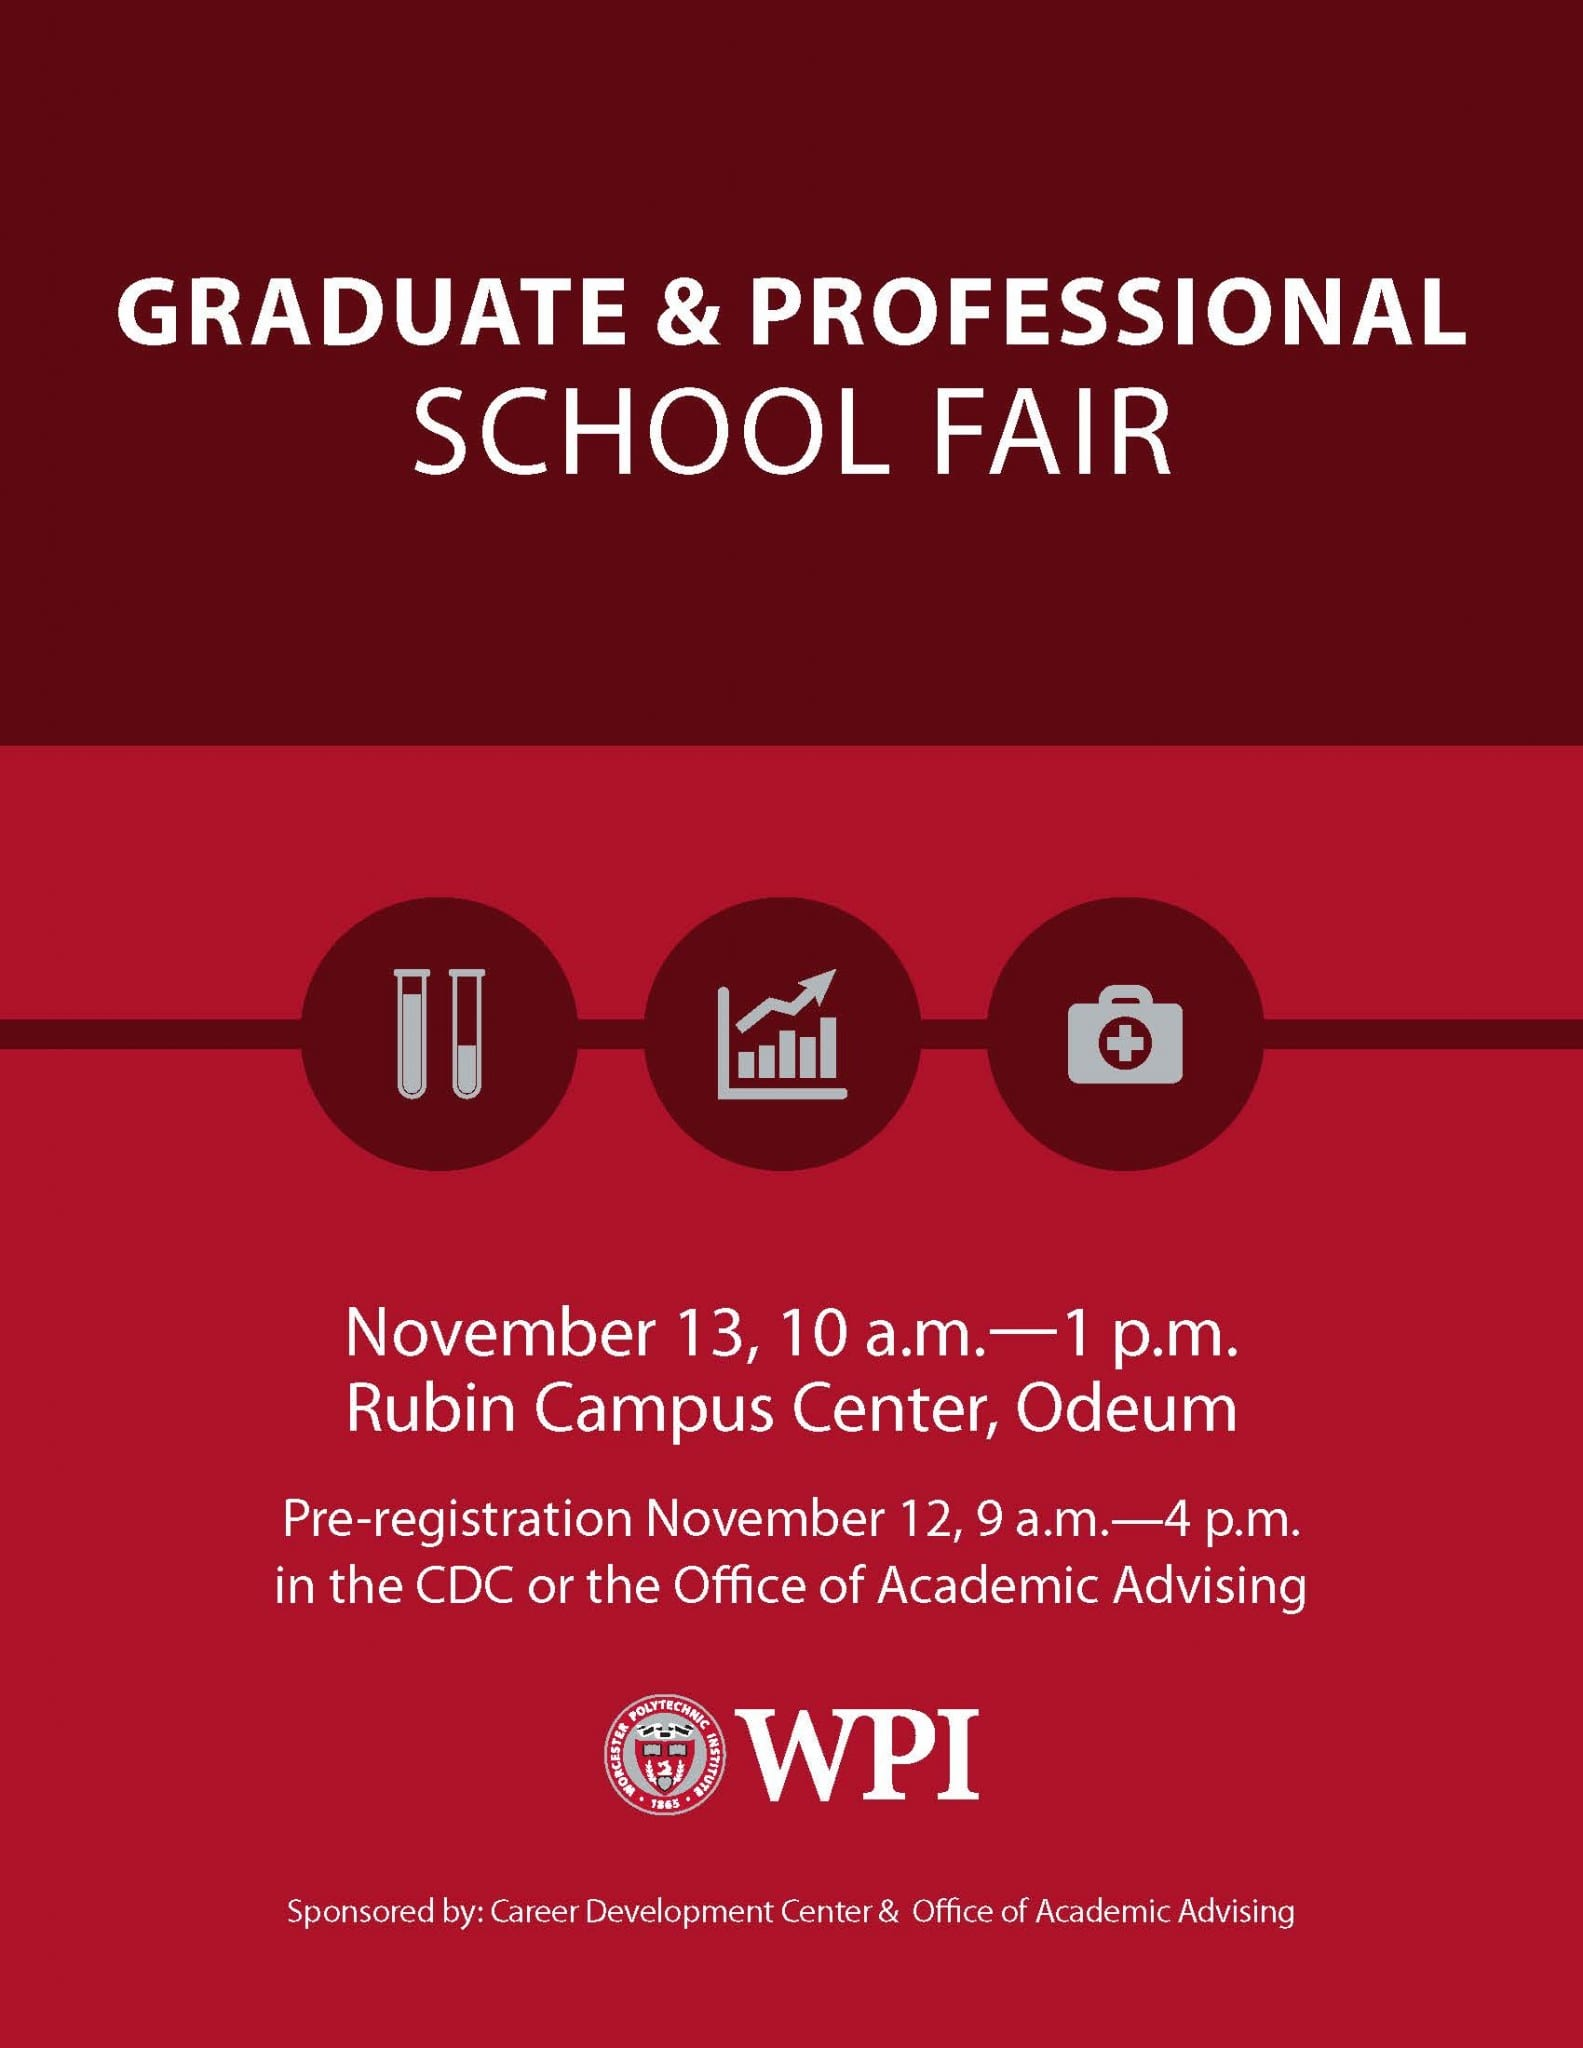 Upcoming Graduate & Professional School Fair